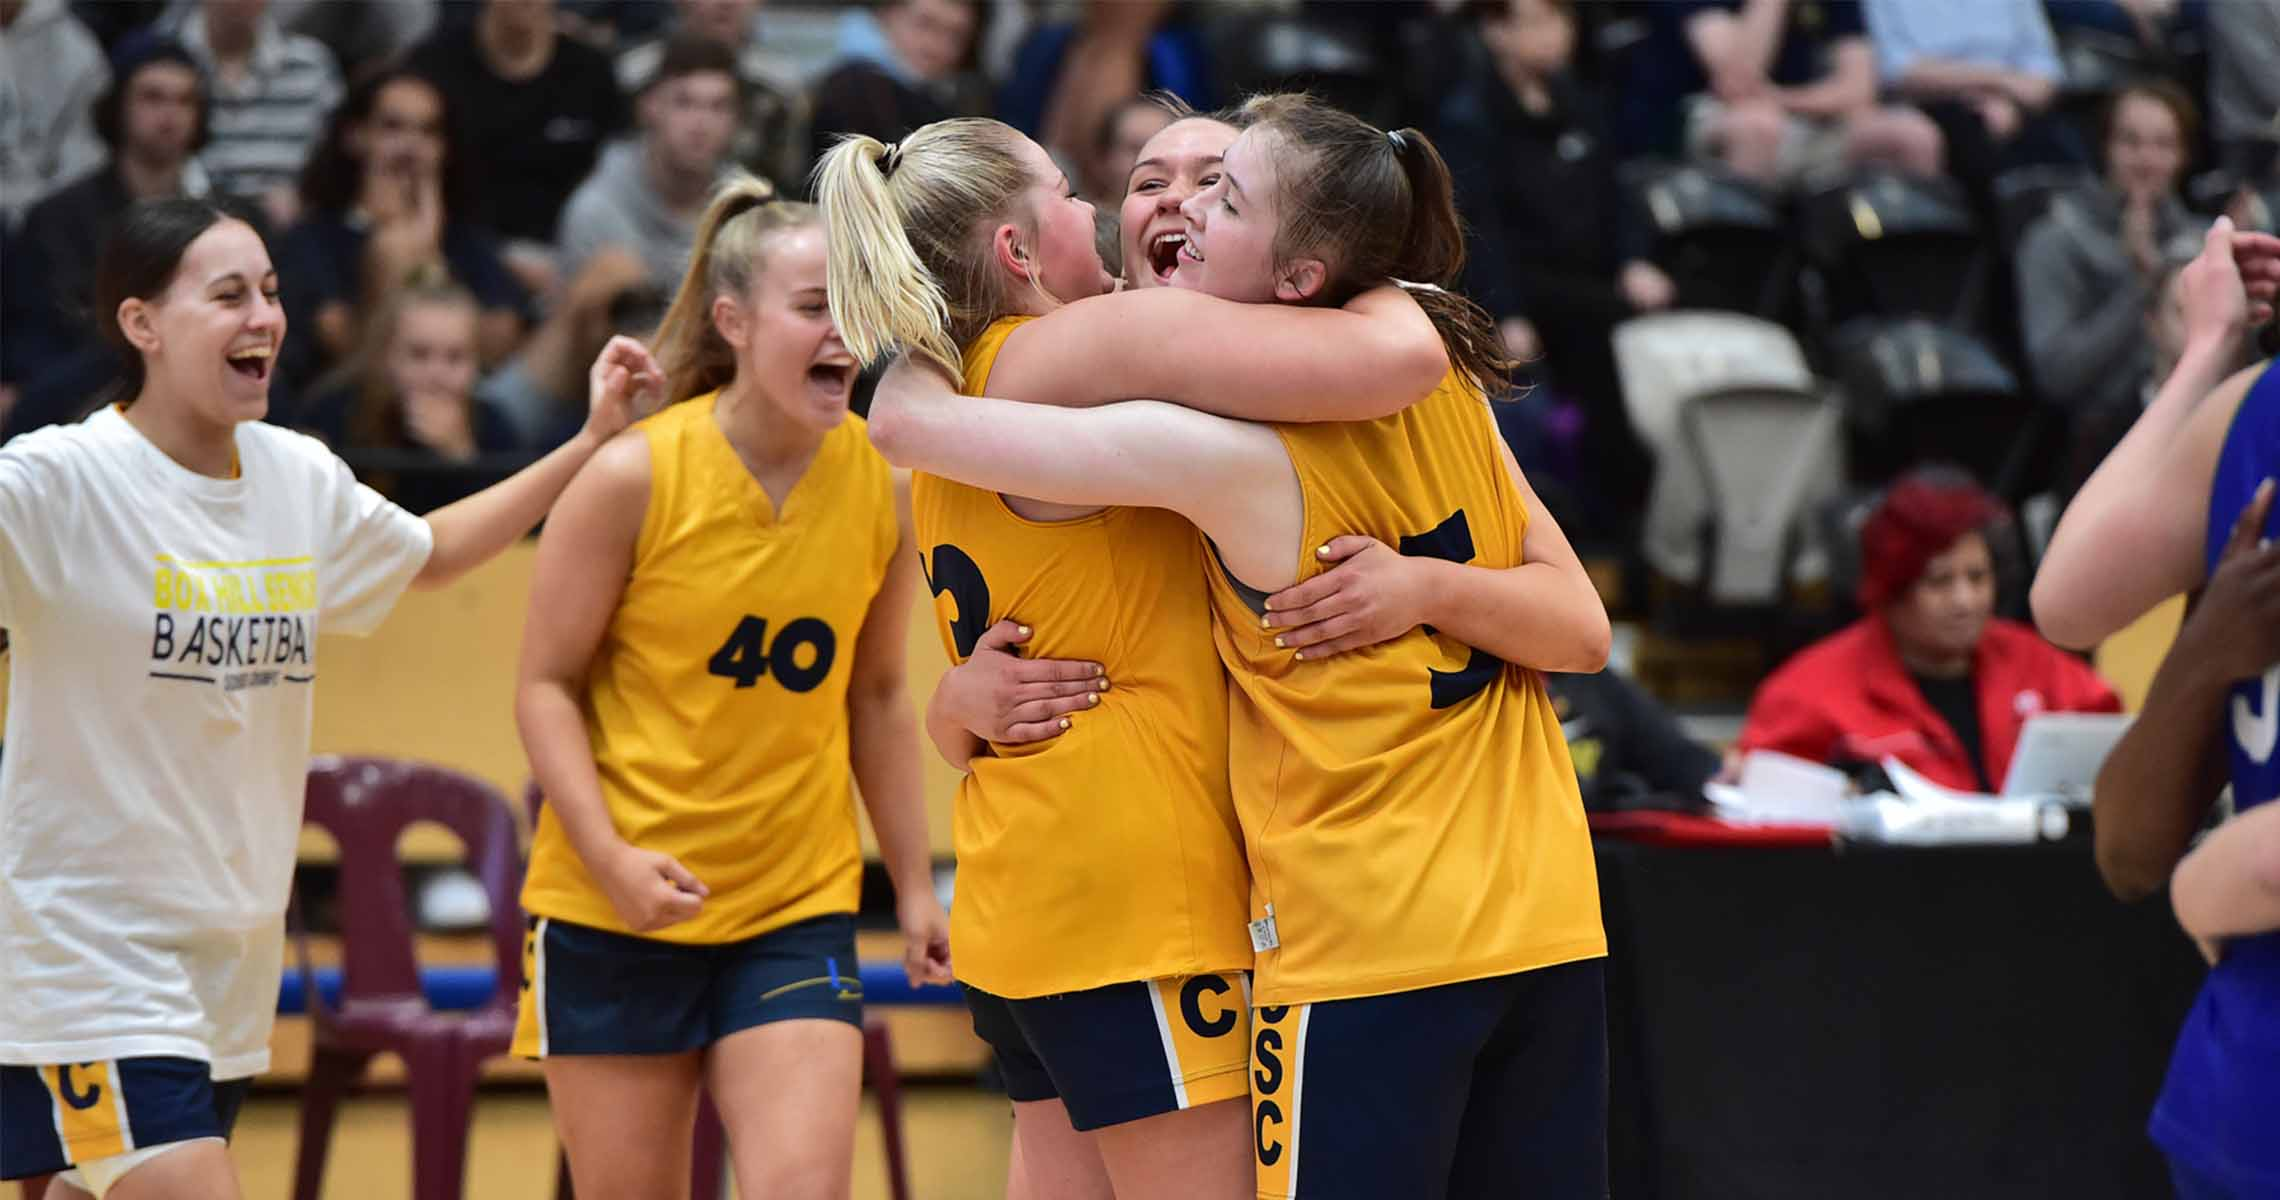 Gold Coast secures the Australian School Championships for next 3 years